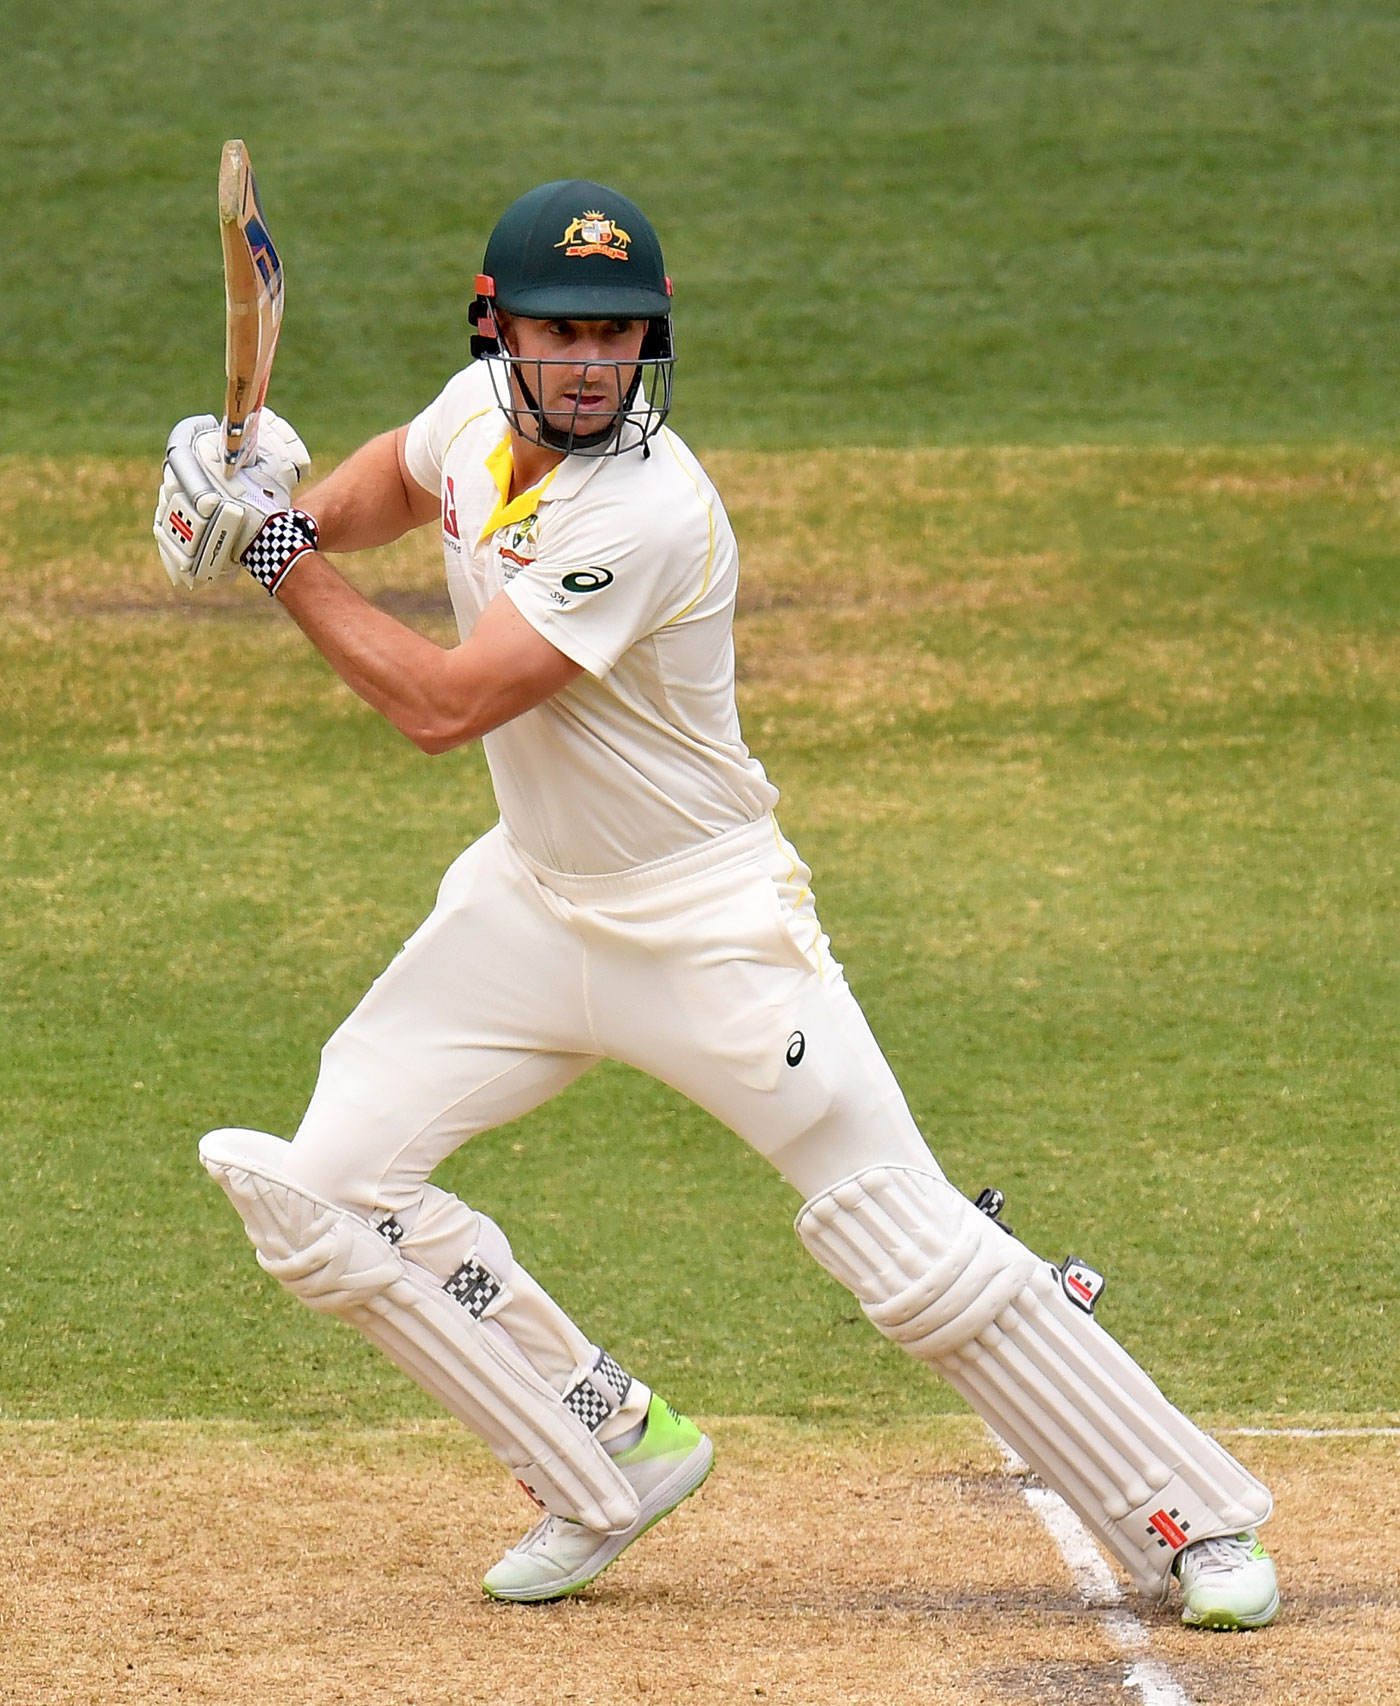 Ashes 2017/18: To Get a Hundred Was a Great Feeling - Shaun Marsh 1